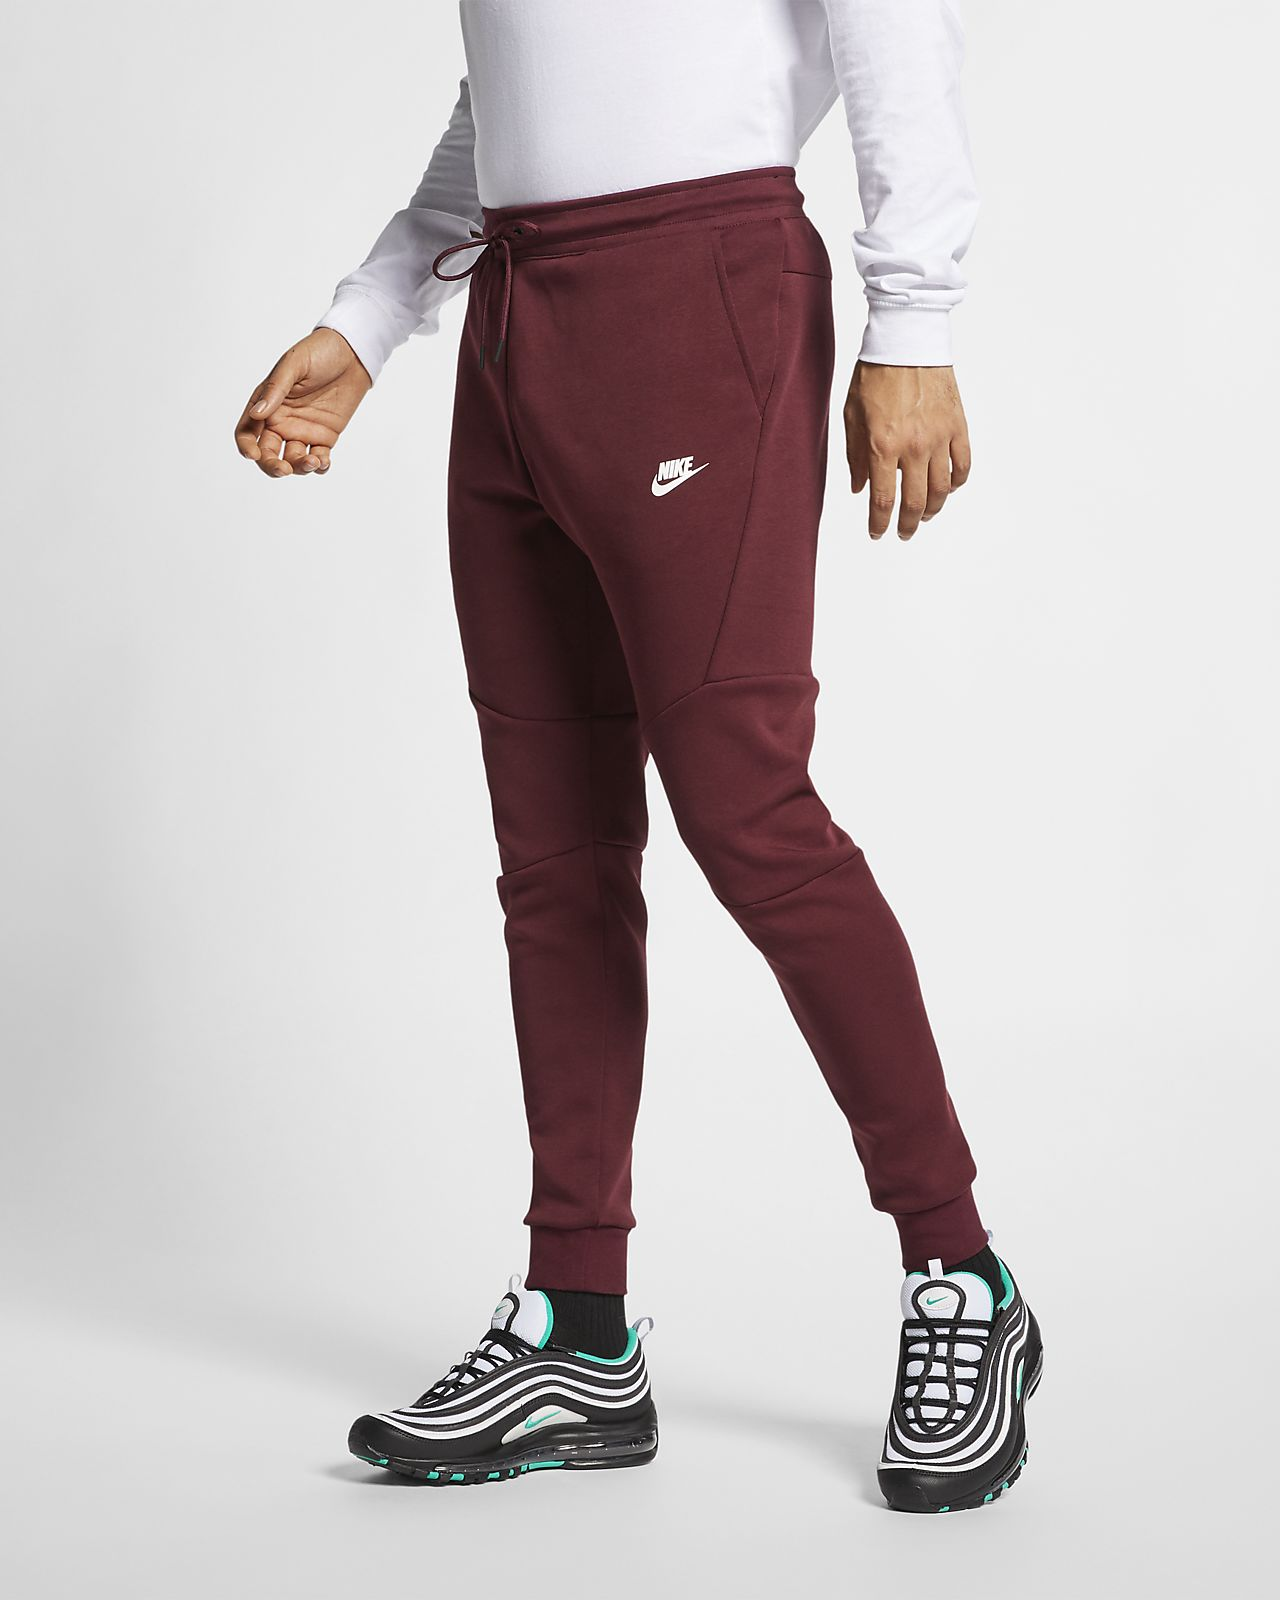 6145e0d97332 Nike Sportswear Tech Fleece Men s Joggers. Nike.com MA